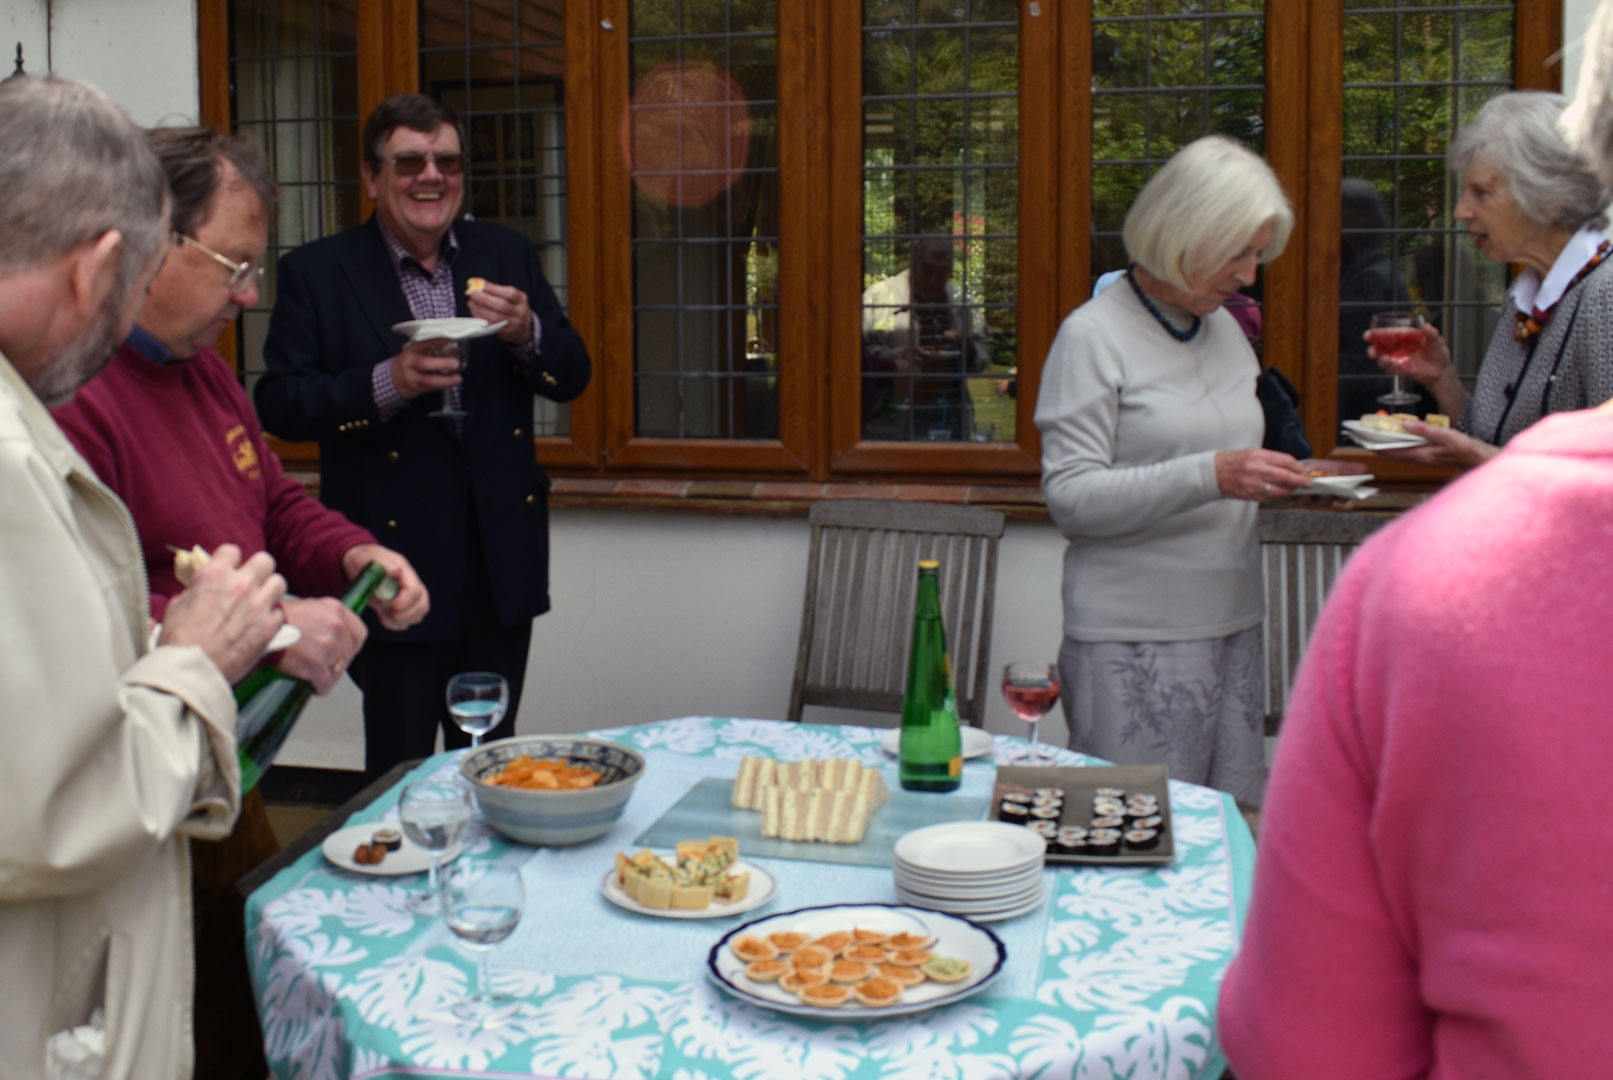 Members enjoying the lunchtime food and drink after Chiyan Wong's recital at Breinton